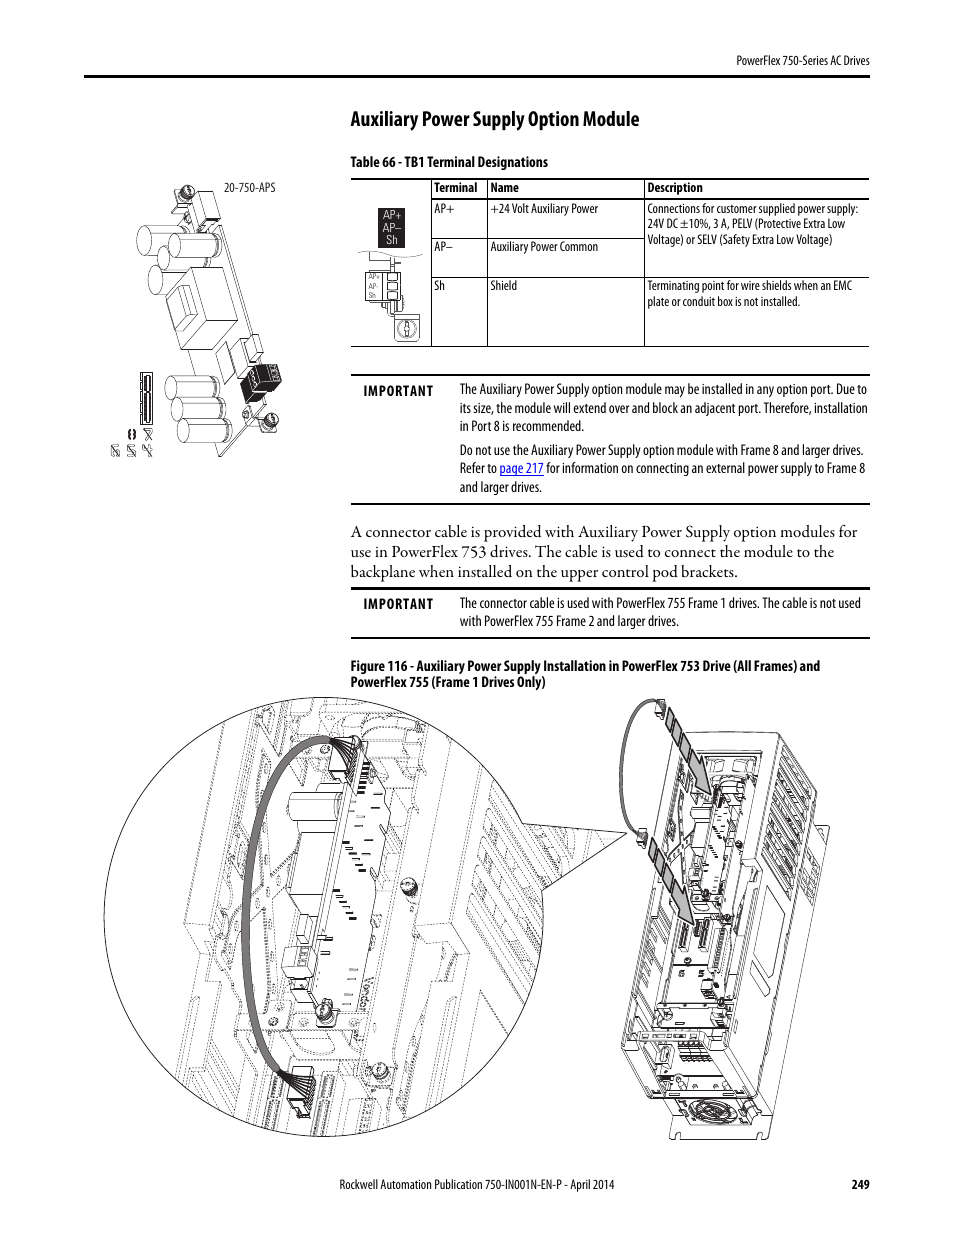 Powerflex 753 Drive Wiring Ac Auxiliary Power Supply Option Module Rockwell Automation Series Drives User Manual Page 954x1235